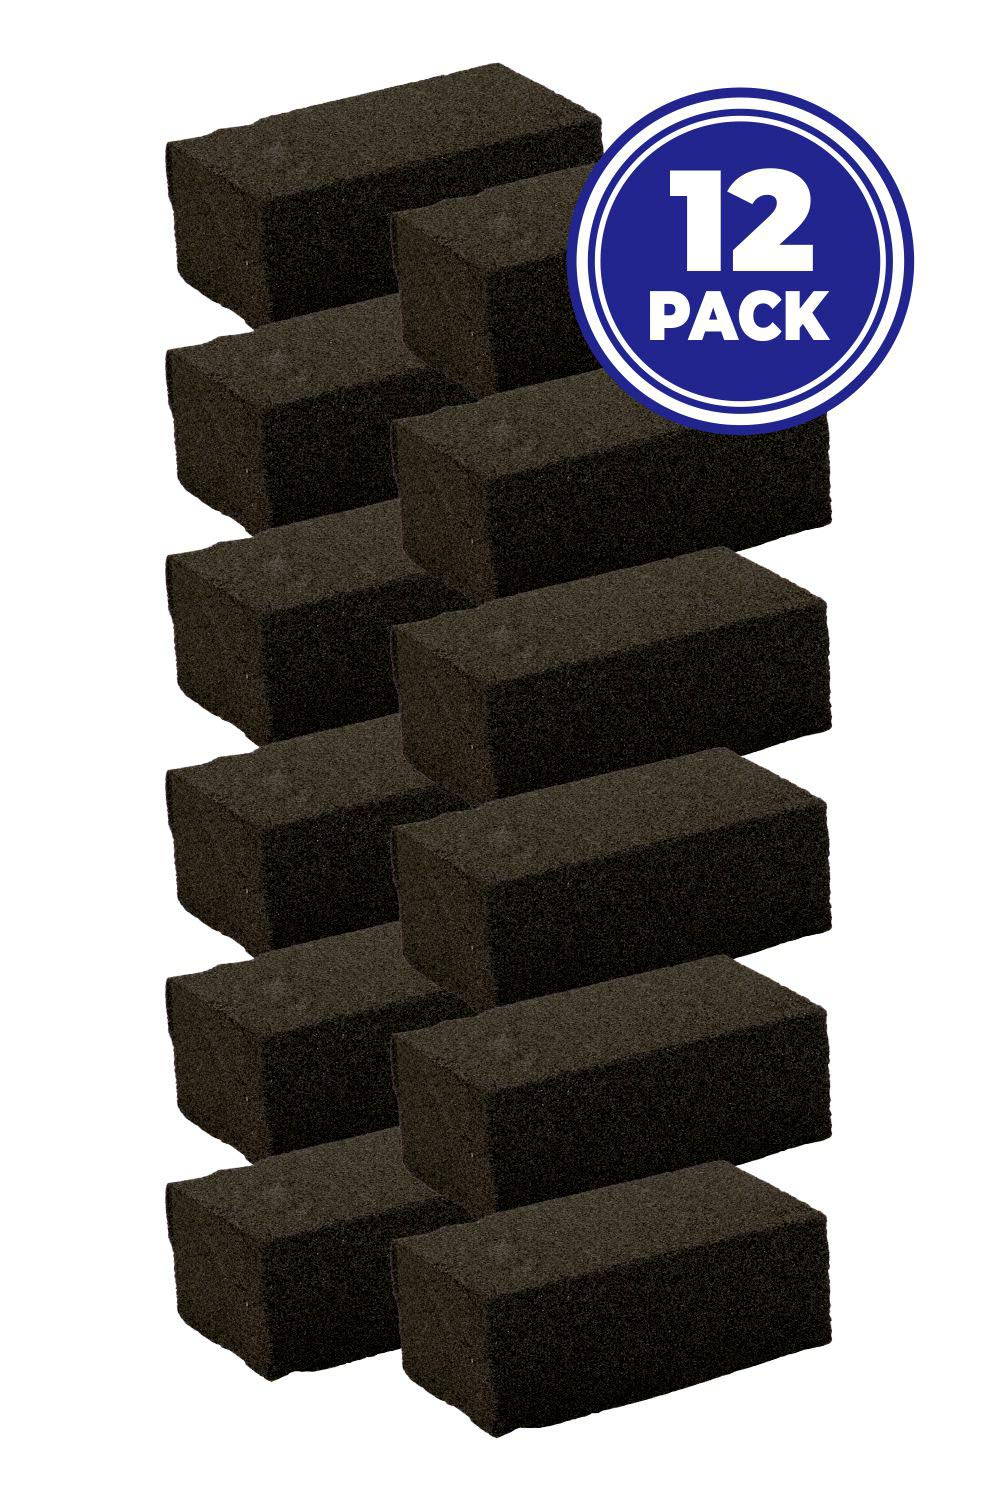 NVM Trading - Pack of 12 Grill Bricks, Commercial Restaurant Grade Pumice Stone Barbecue Grill and Griddle Scraper Blocks, Cleans Grills Effectively with No Chemicals (12) by NVM Trading